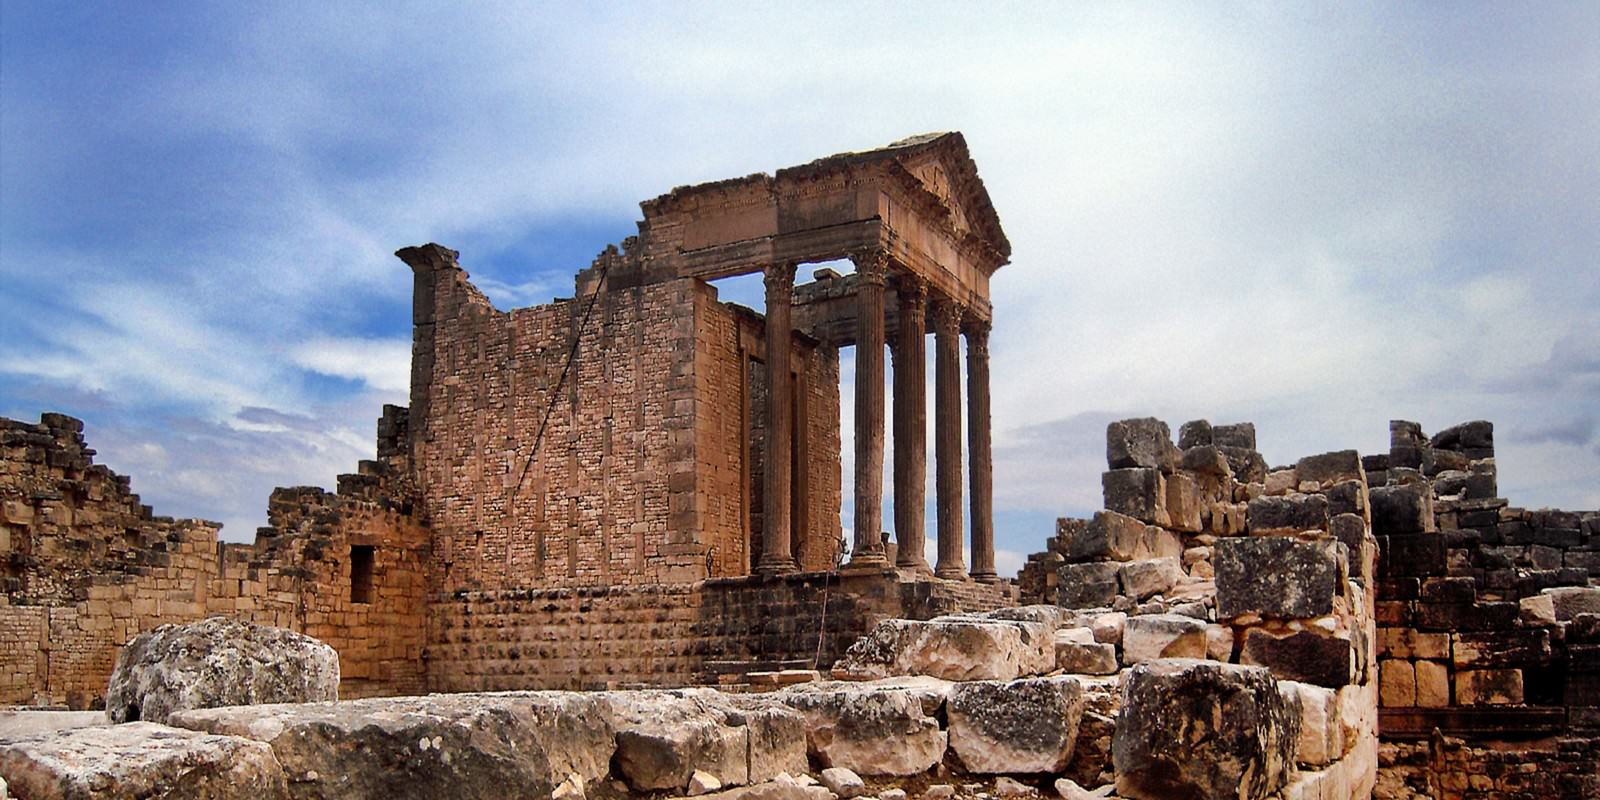 Dougga, An Entire Ancient Roman City